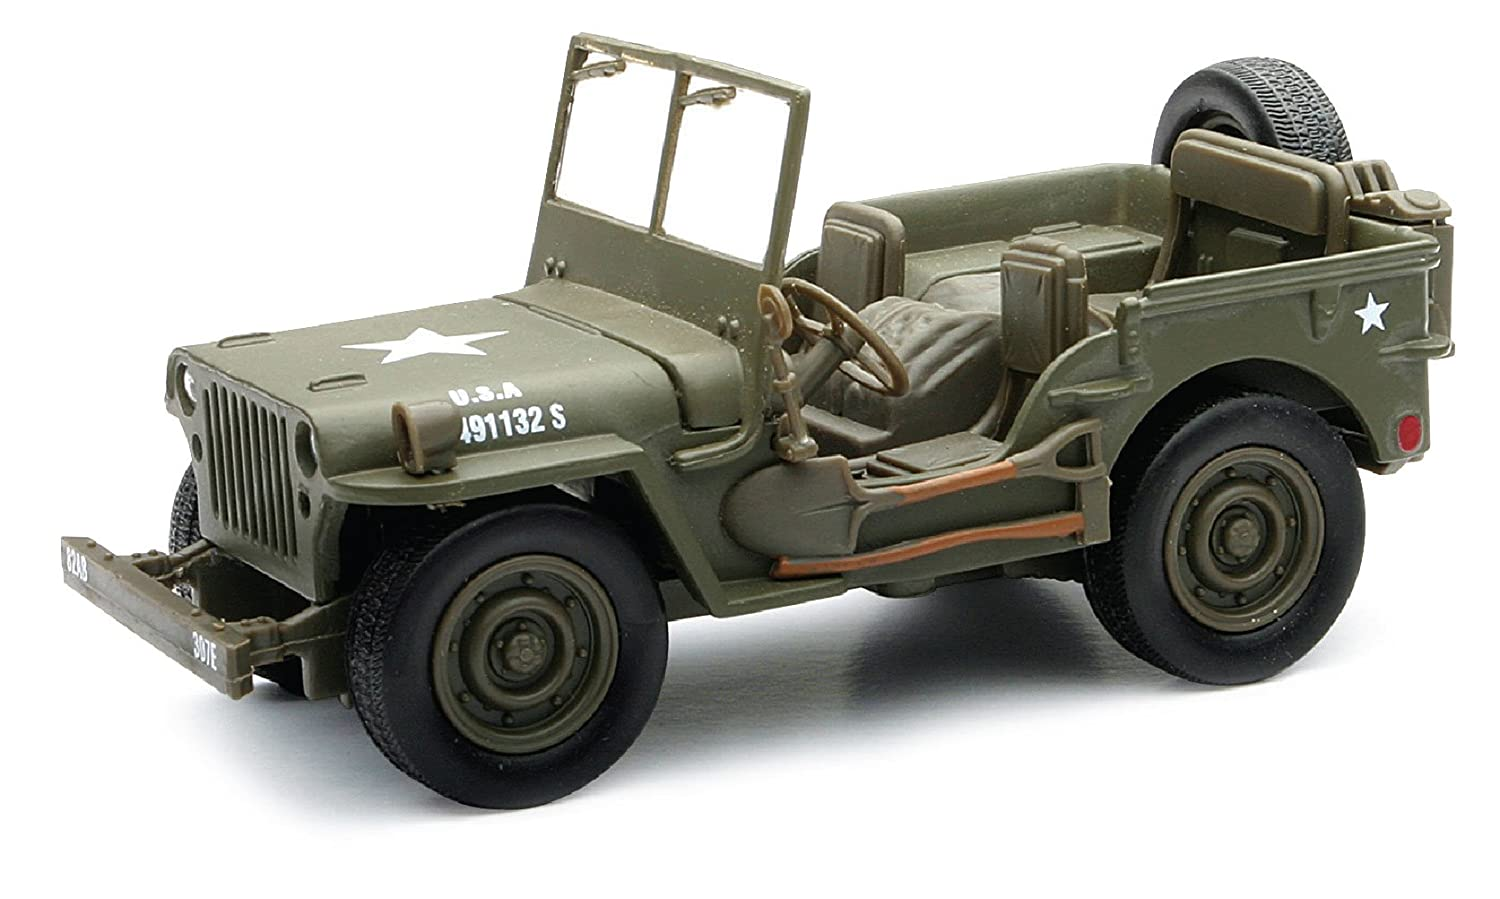 New Ray Classic Armour Willys Jeep 132 Scale Toys Jeeps On Filter Box Games